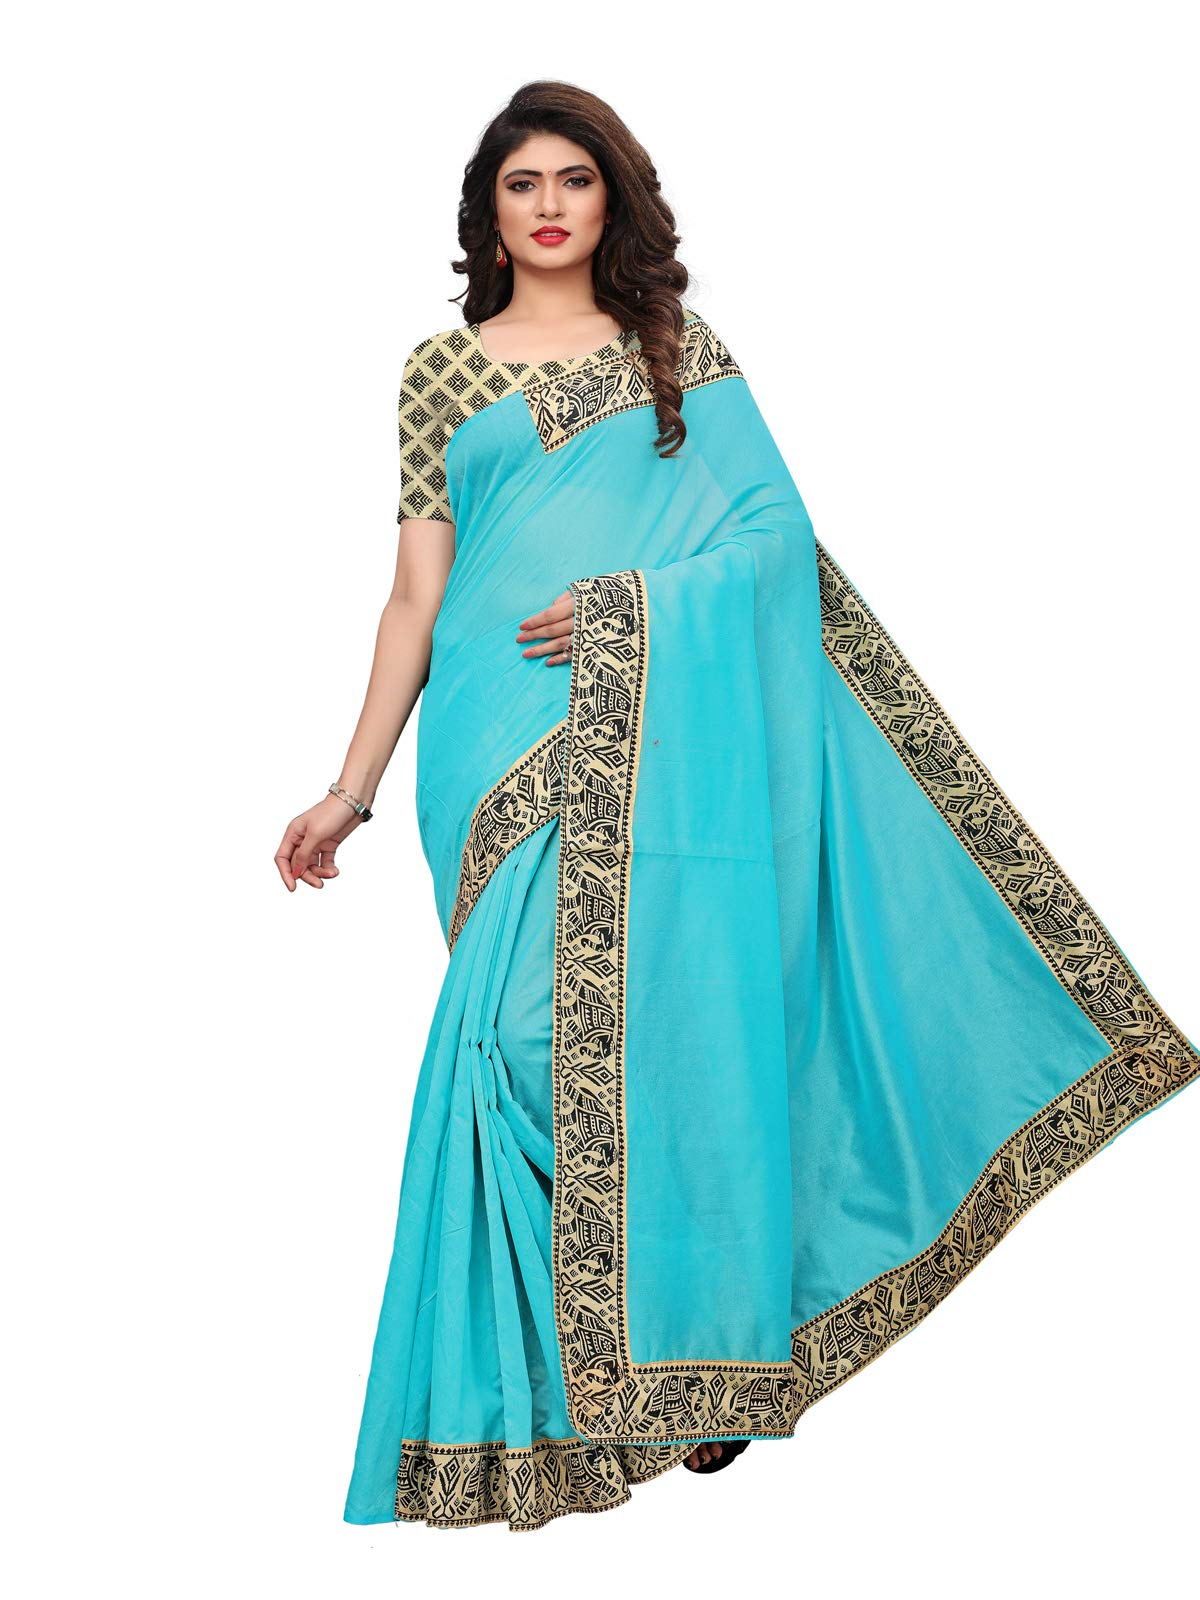 Kanchnar Women's Chanderi Silk Saree